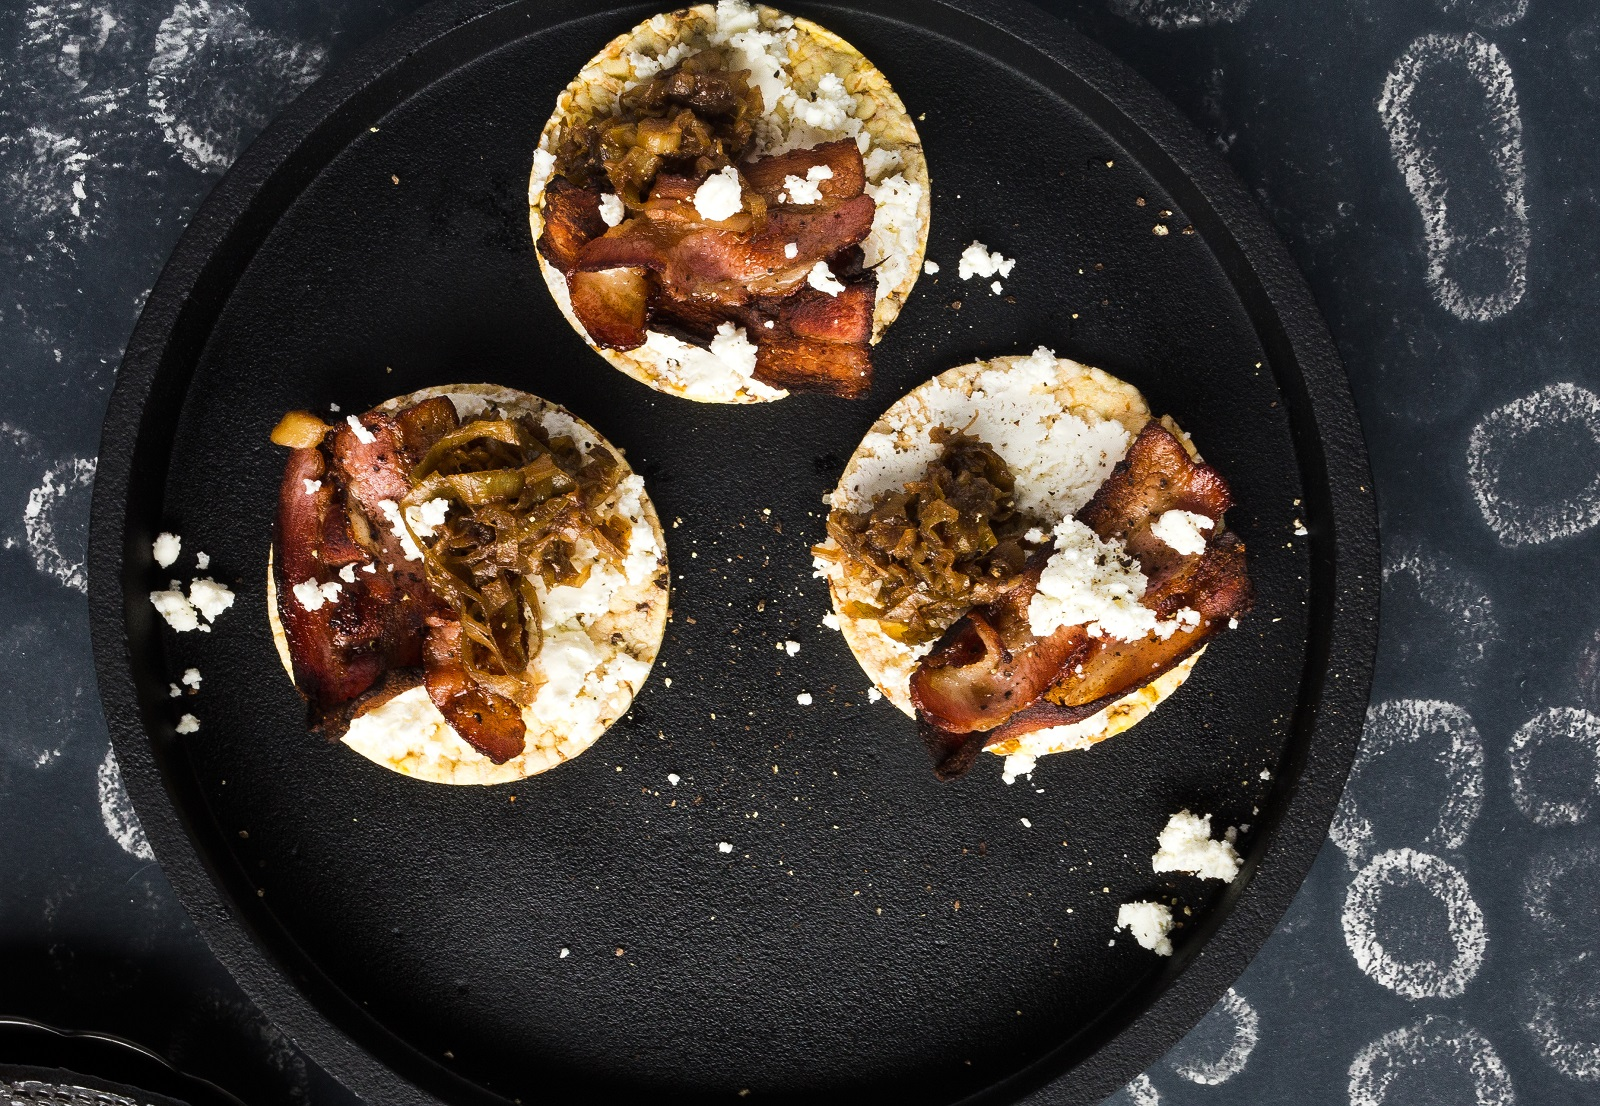 caramelised leek, bacon & goats cheese on Corn Thins for dinner